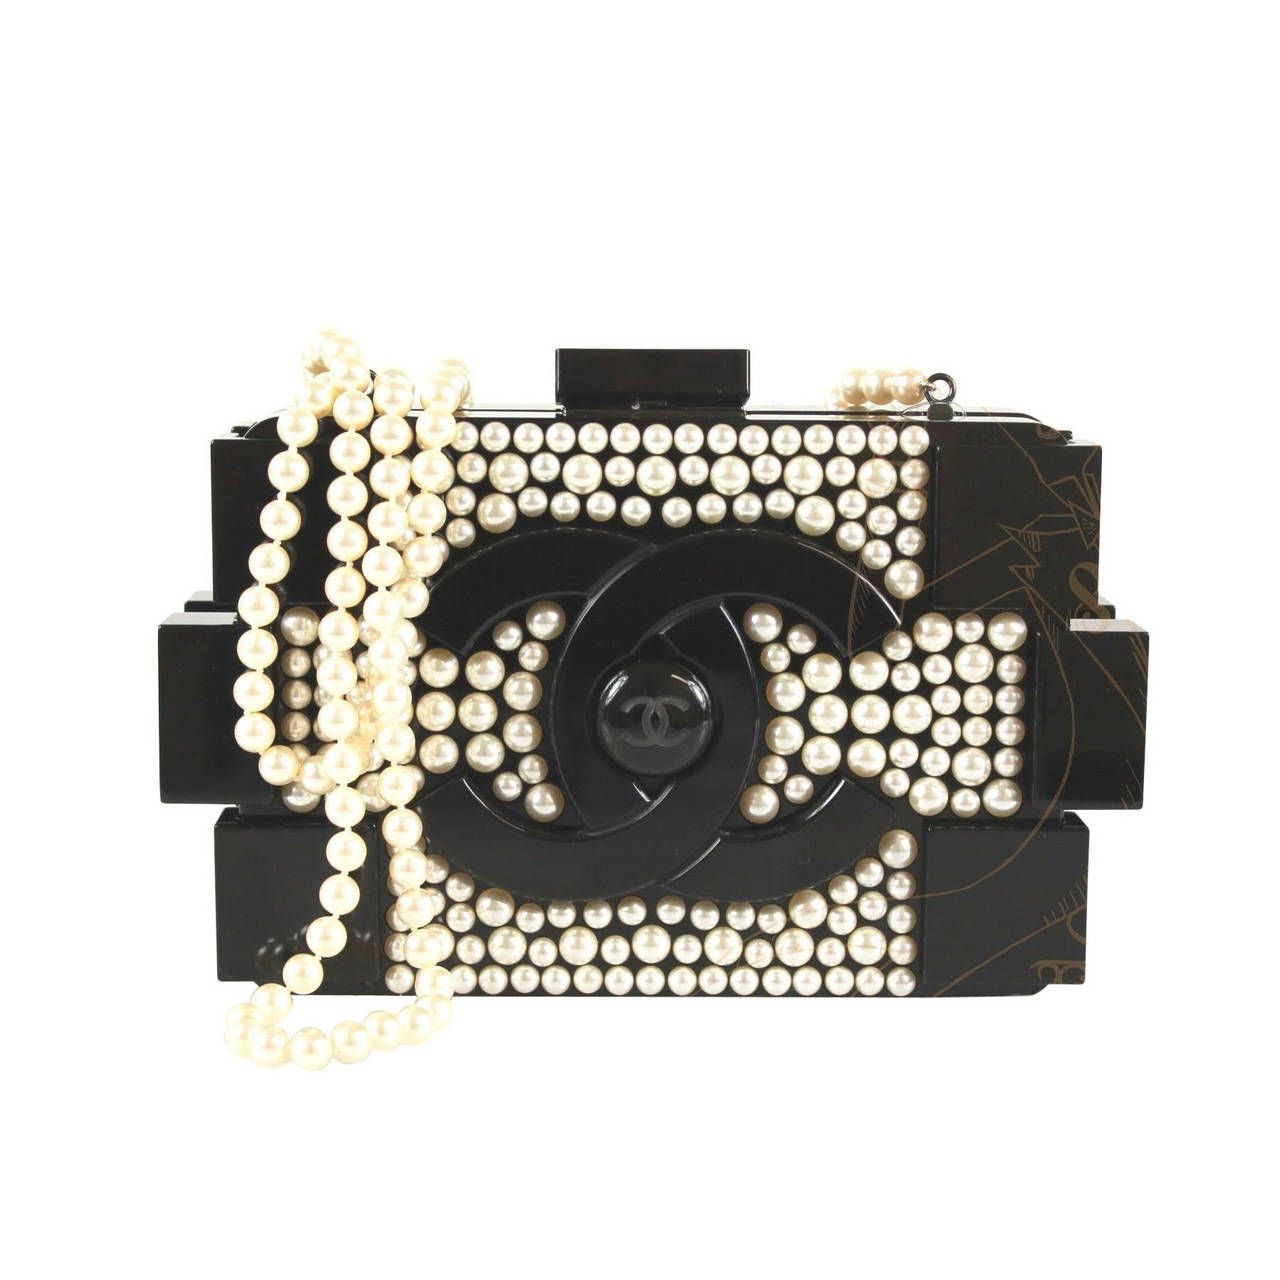 d4bc1705ce04 Chanel Black Plexiglass Pearl Embellished 2014 Cc Logo Lego Clutch   From a  collection of rare